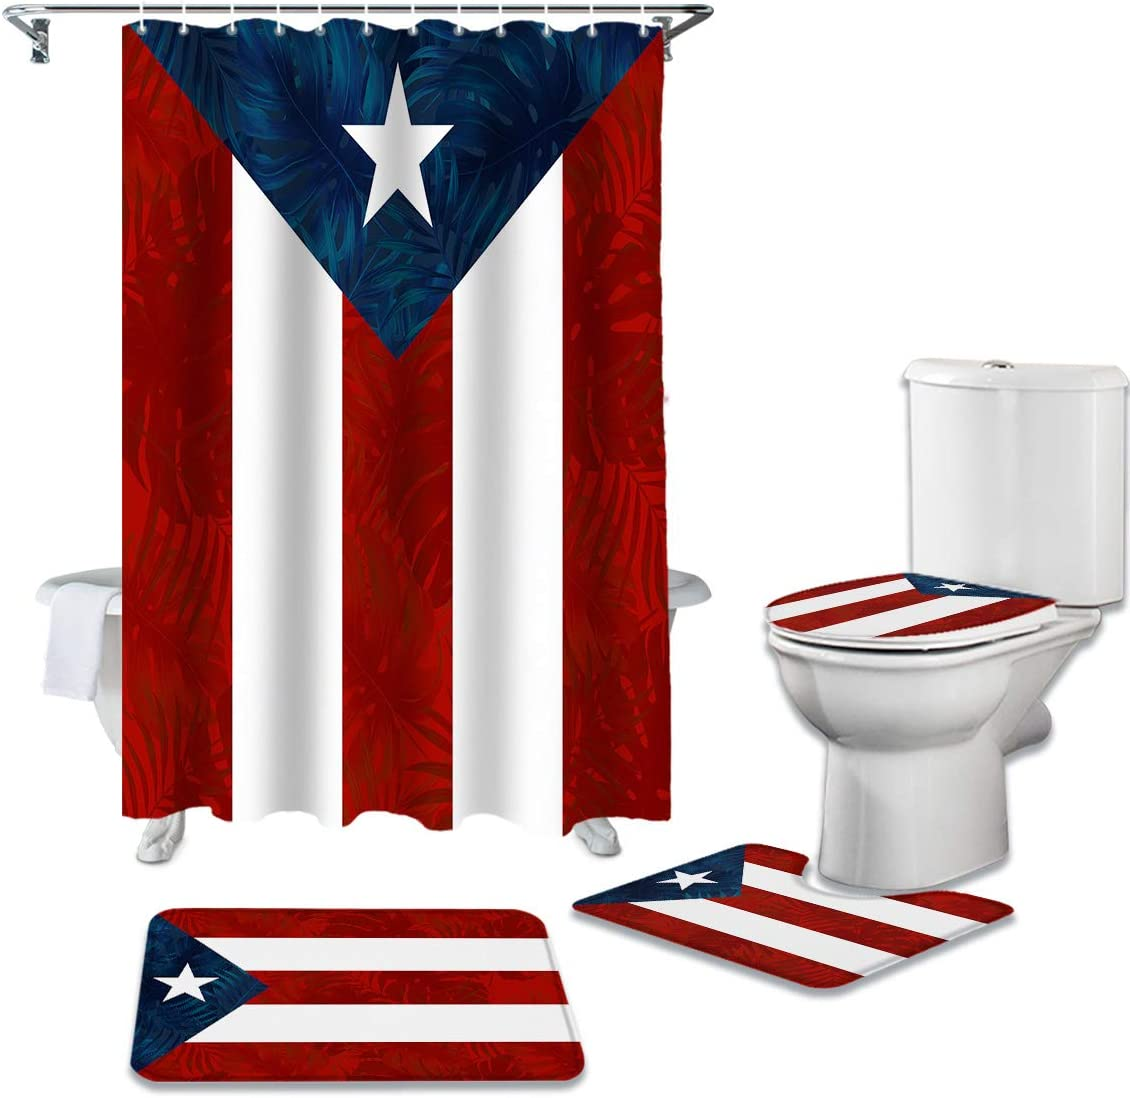 4 Pcs Shower Curtain Sets Puerto Rico Flag Waterproof Fabic Bathroom Set with Non-Slip Rugs Toilet Lid Cover Bath Mat Stripe Shower Curtain with Hooks 36x72 inch Shower Curtain with Hooks Large